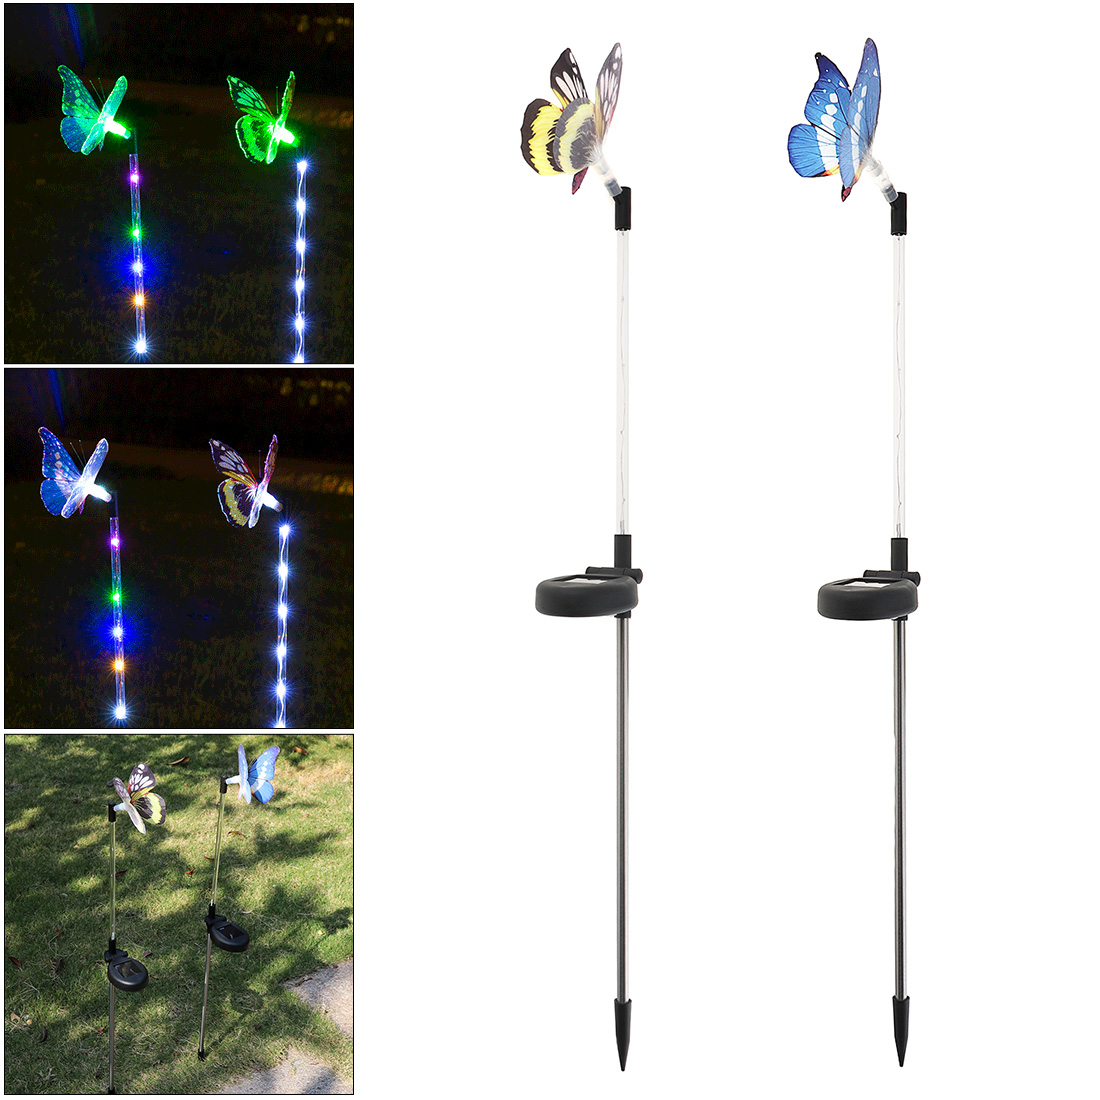 New 2pcs Solar LED Stainless Steel Butterfly Lamp with Light-Operated and On / Off Control for Garden Decoration